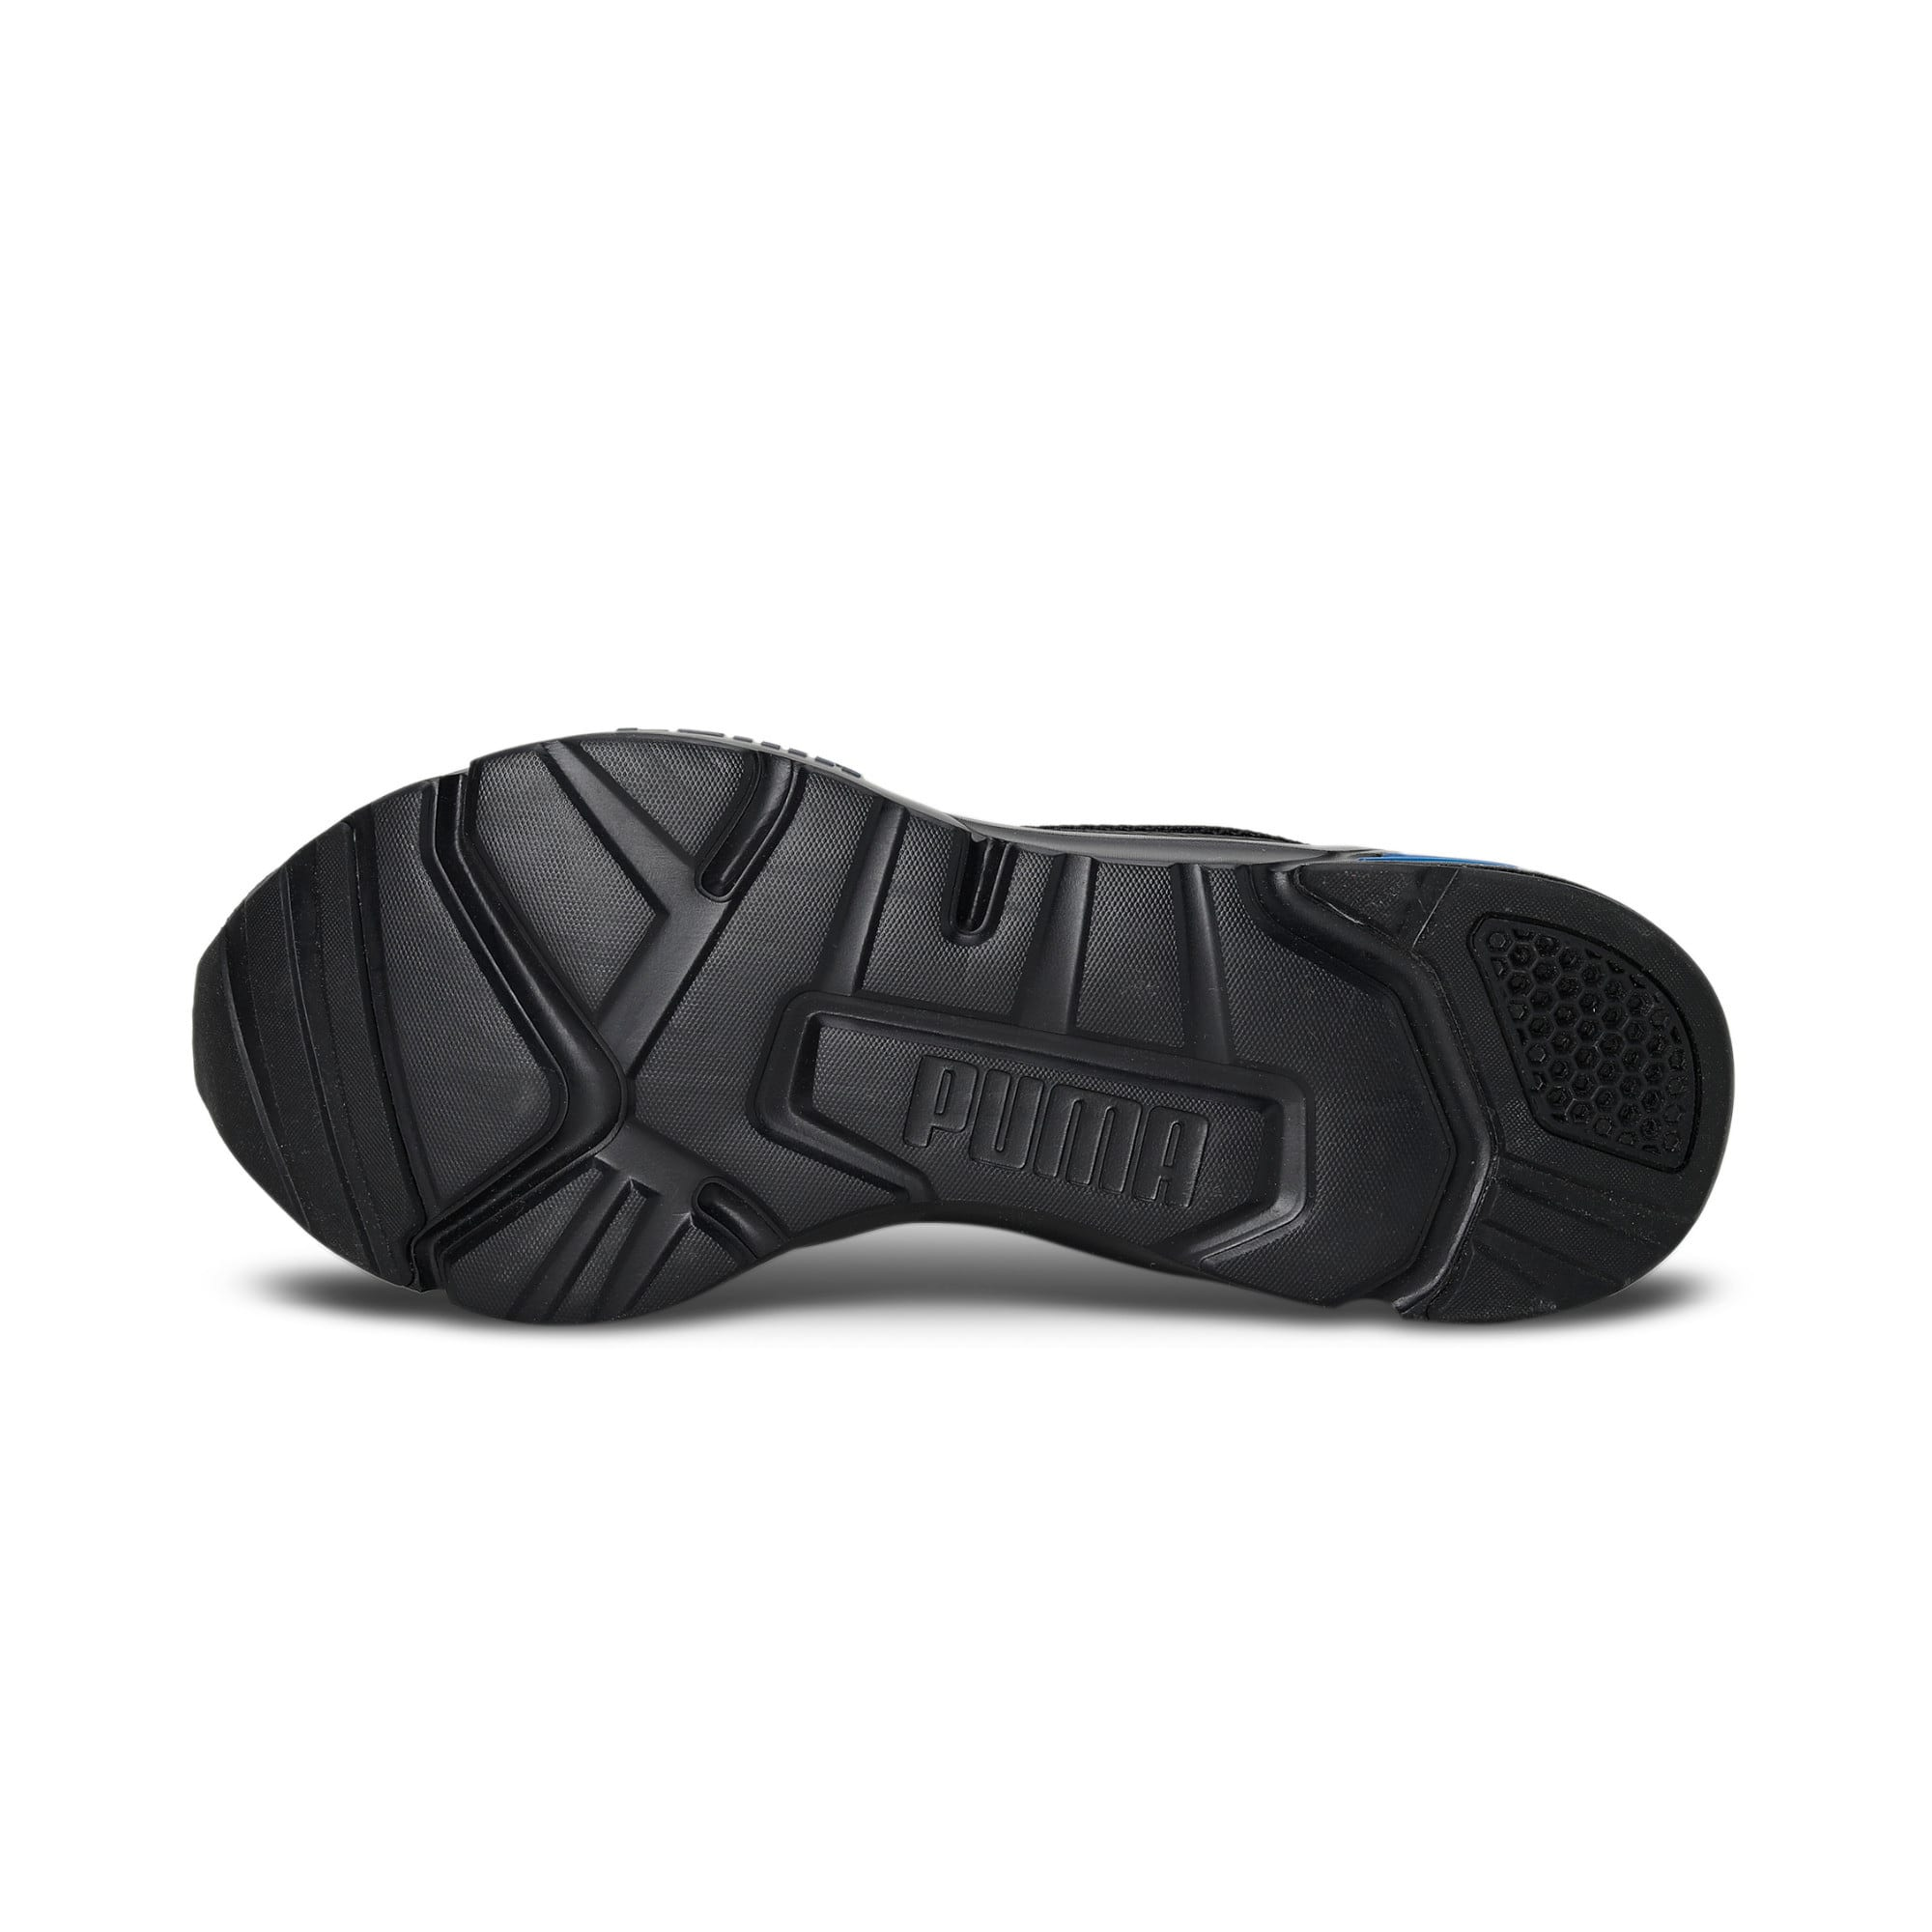 Thumbnail 6 of CELL Phase Men's Running Trainers, Puma Black-Galaxy Blue, medium-IND